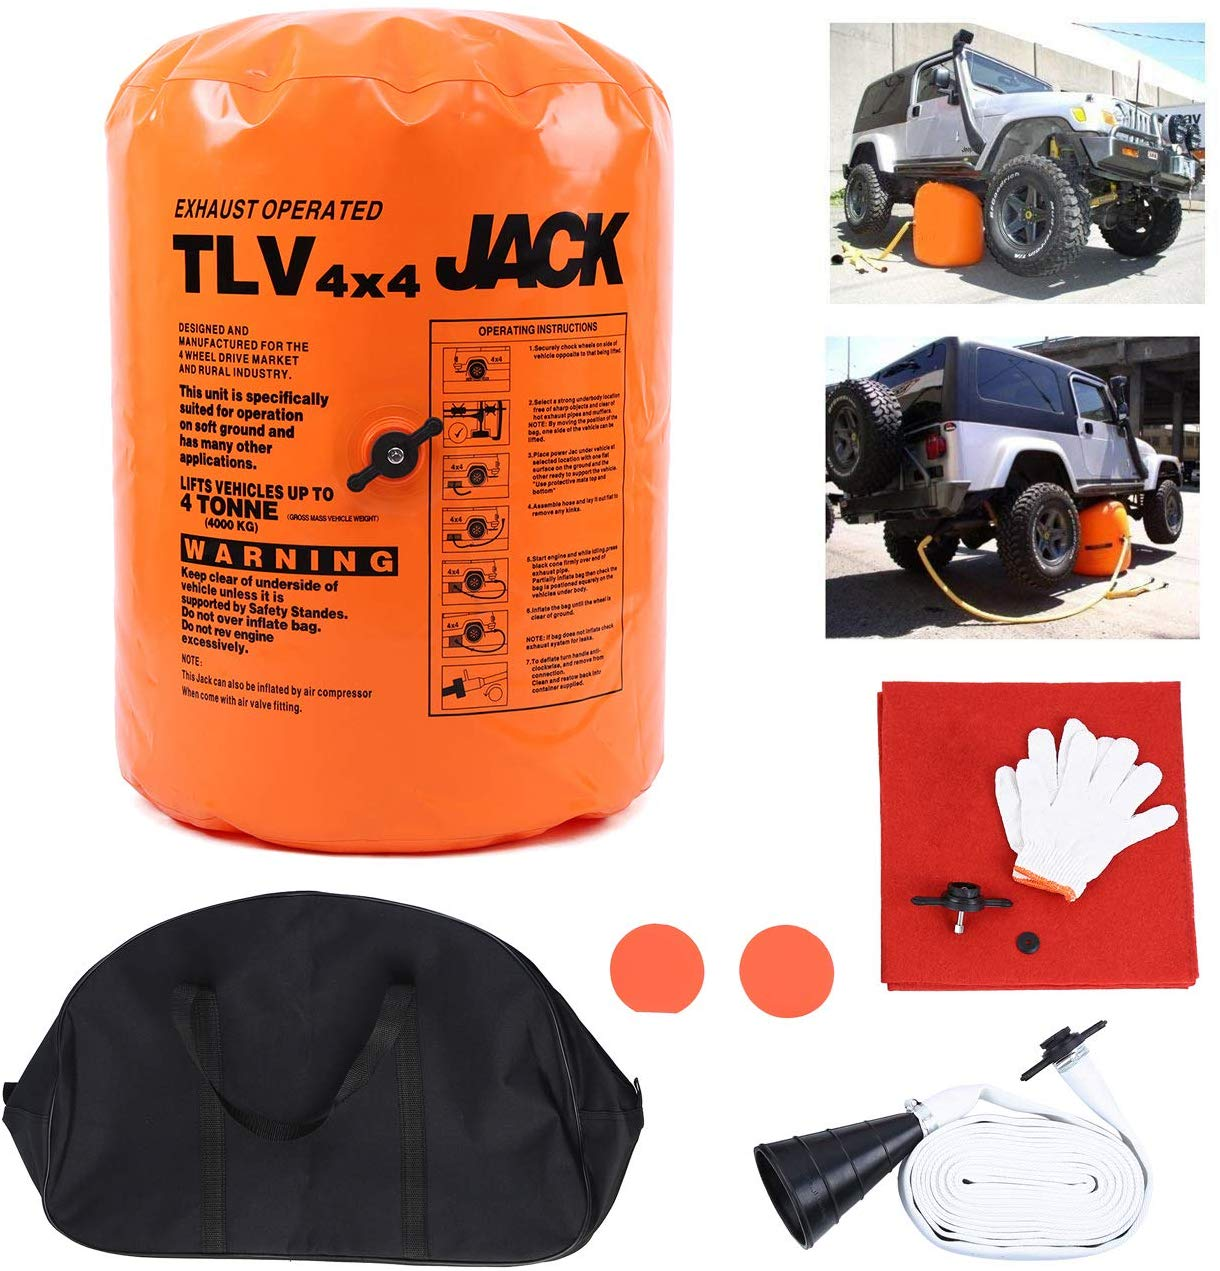 4T Exhaust Air Jack Inflatable Jack For SUV Car Truck Off-Road Rescue